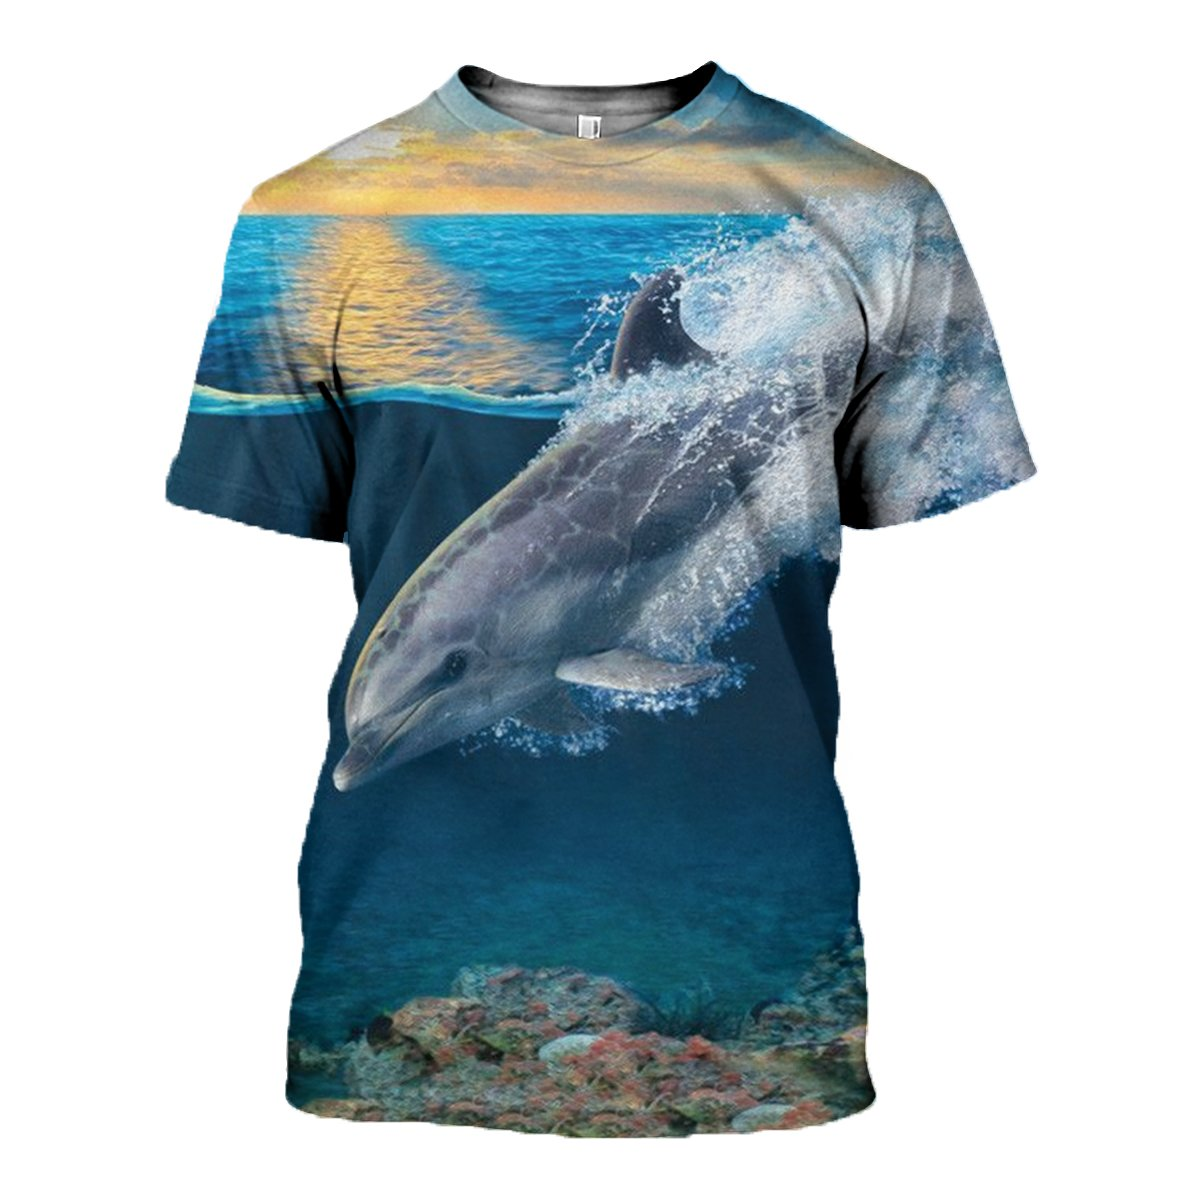 3D printed Dolphin and sunset Tops - gopowear.com